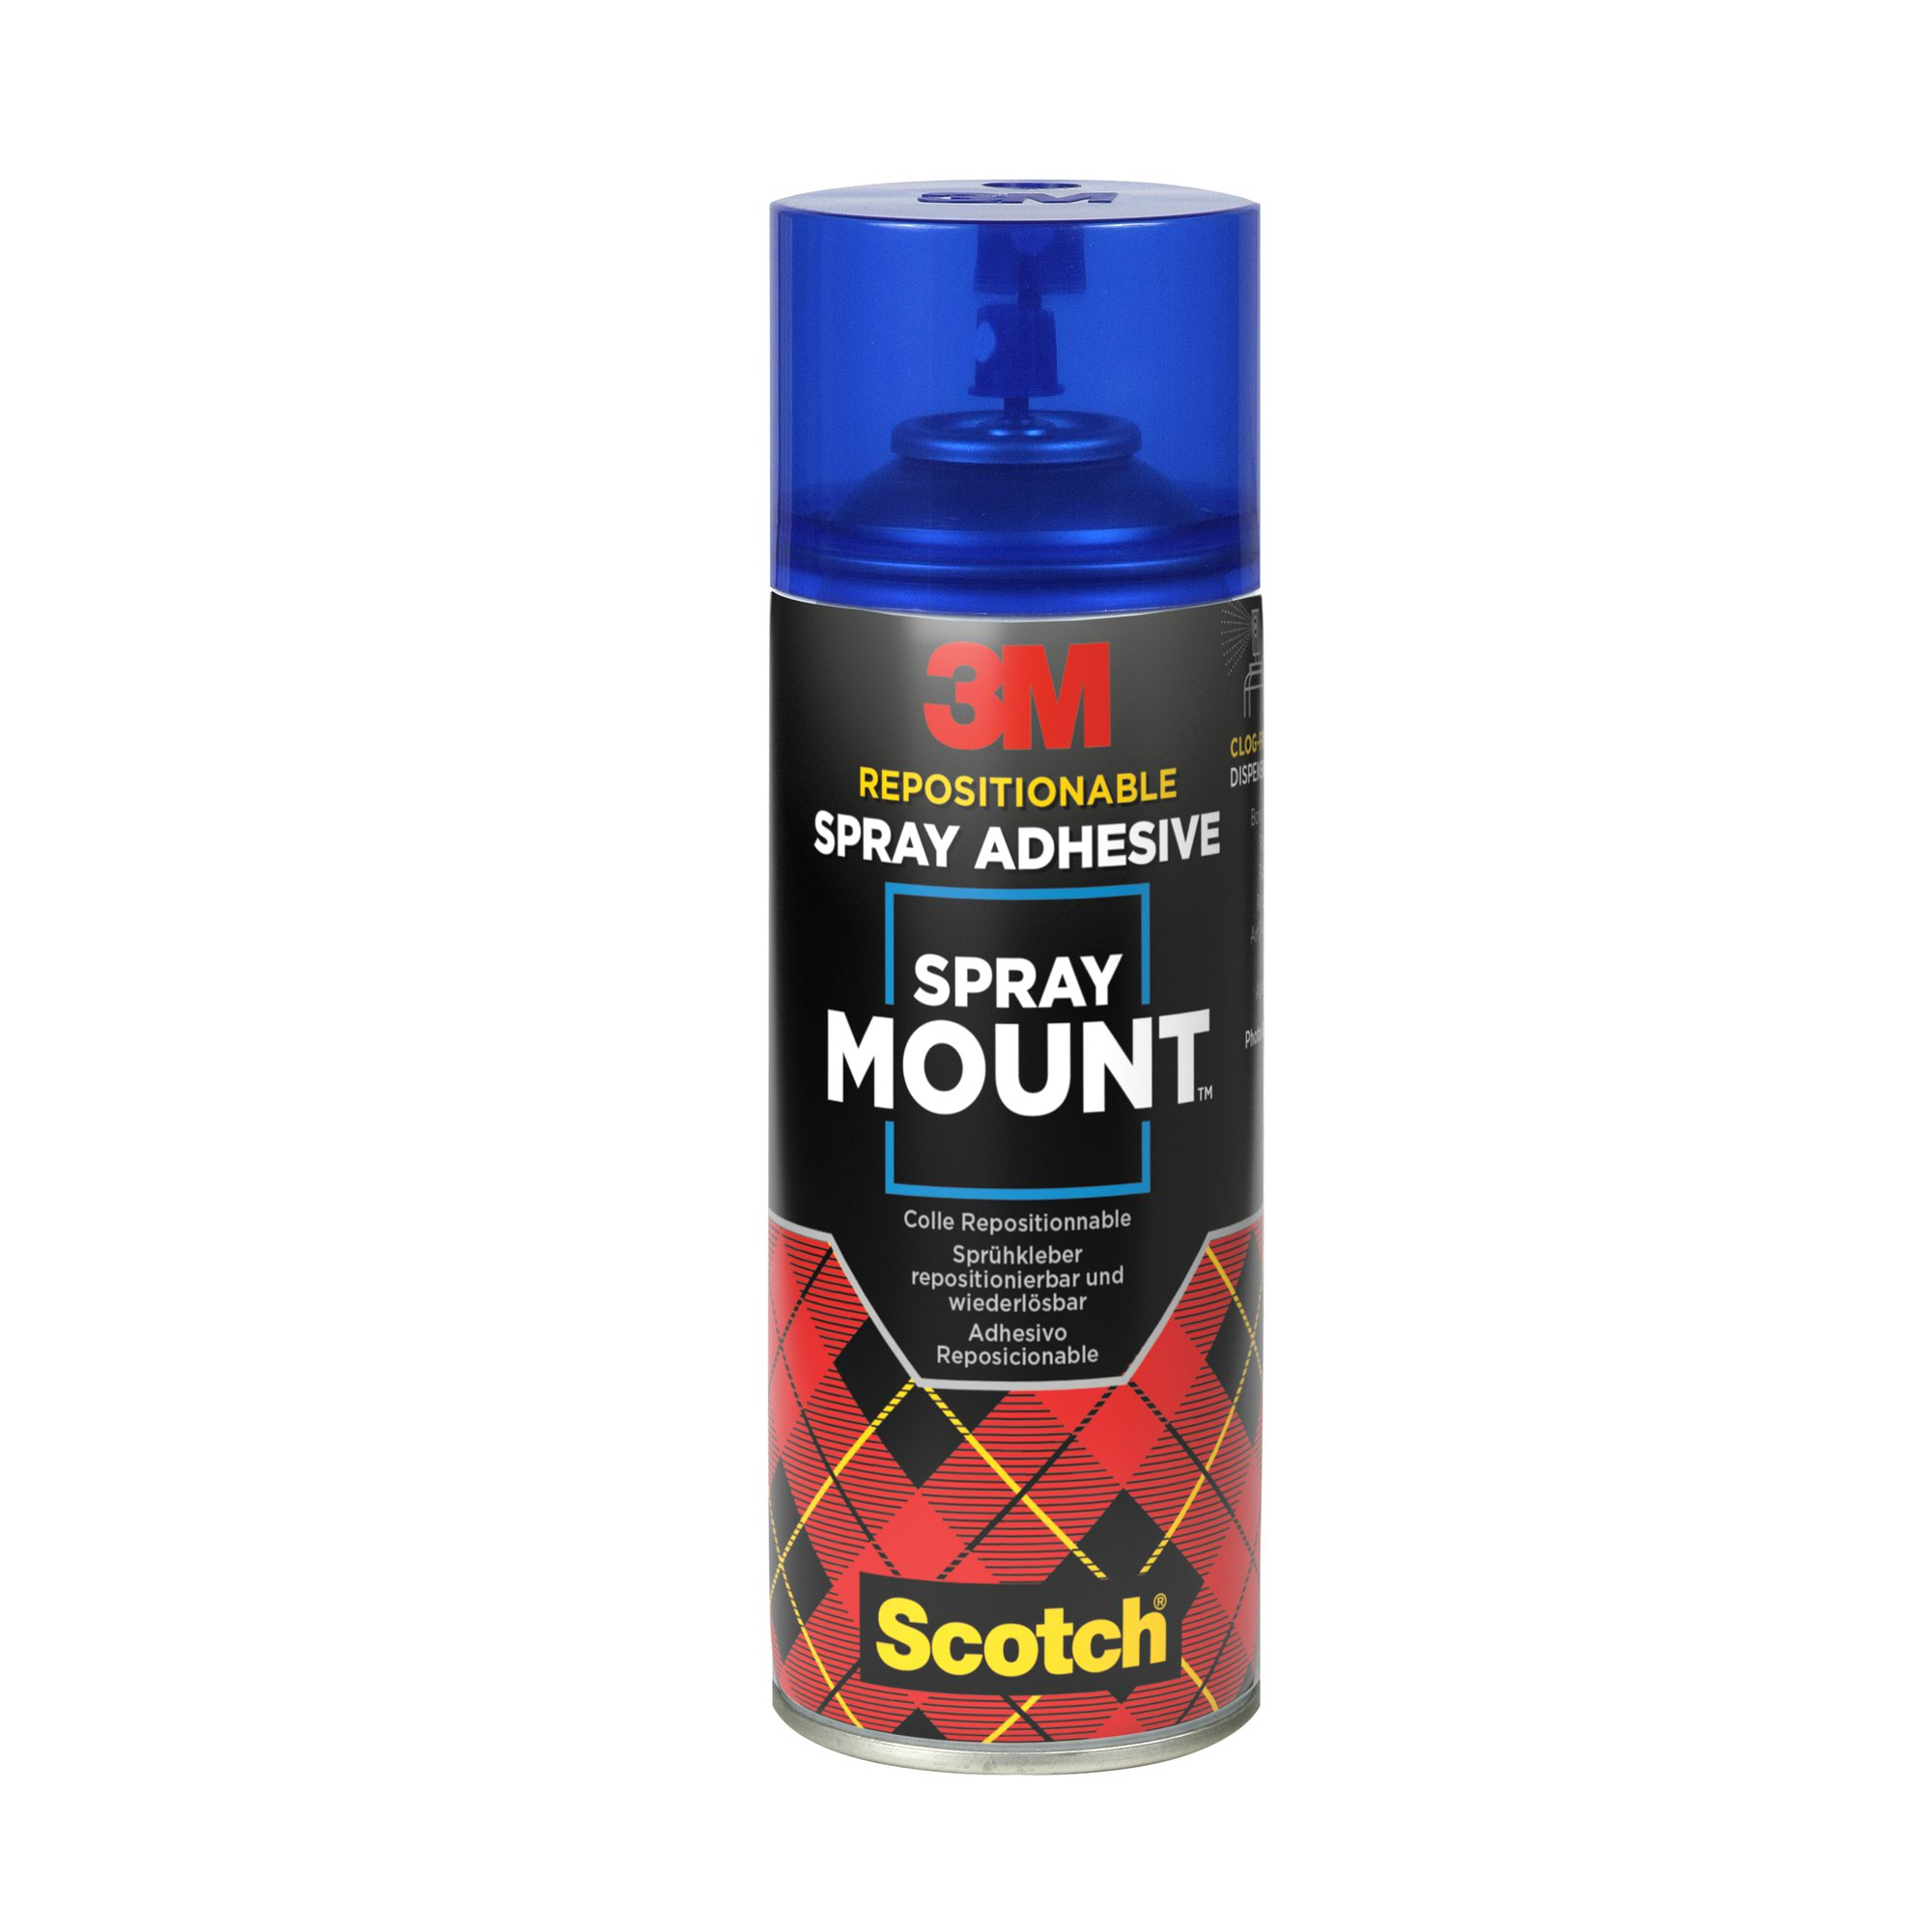 3M Scotch Spraymount Adhesive 200ml HSMOUNT